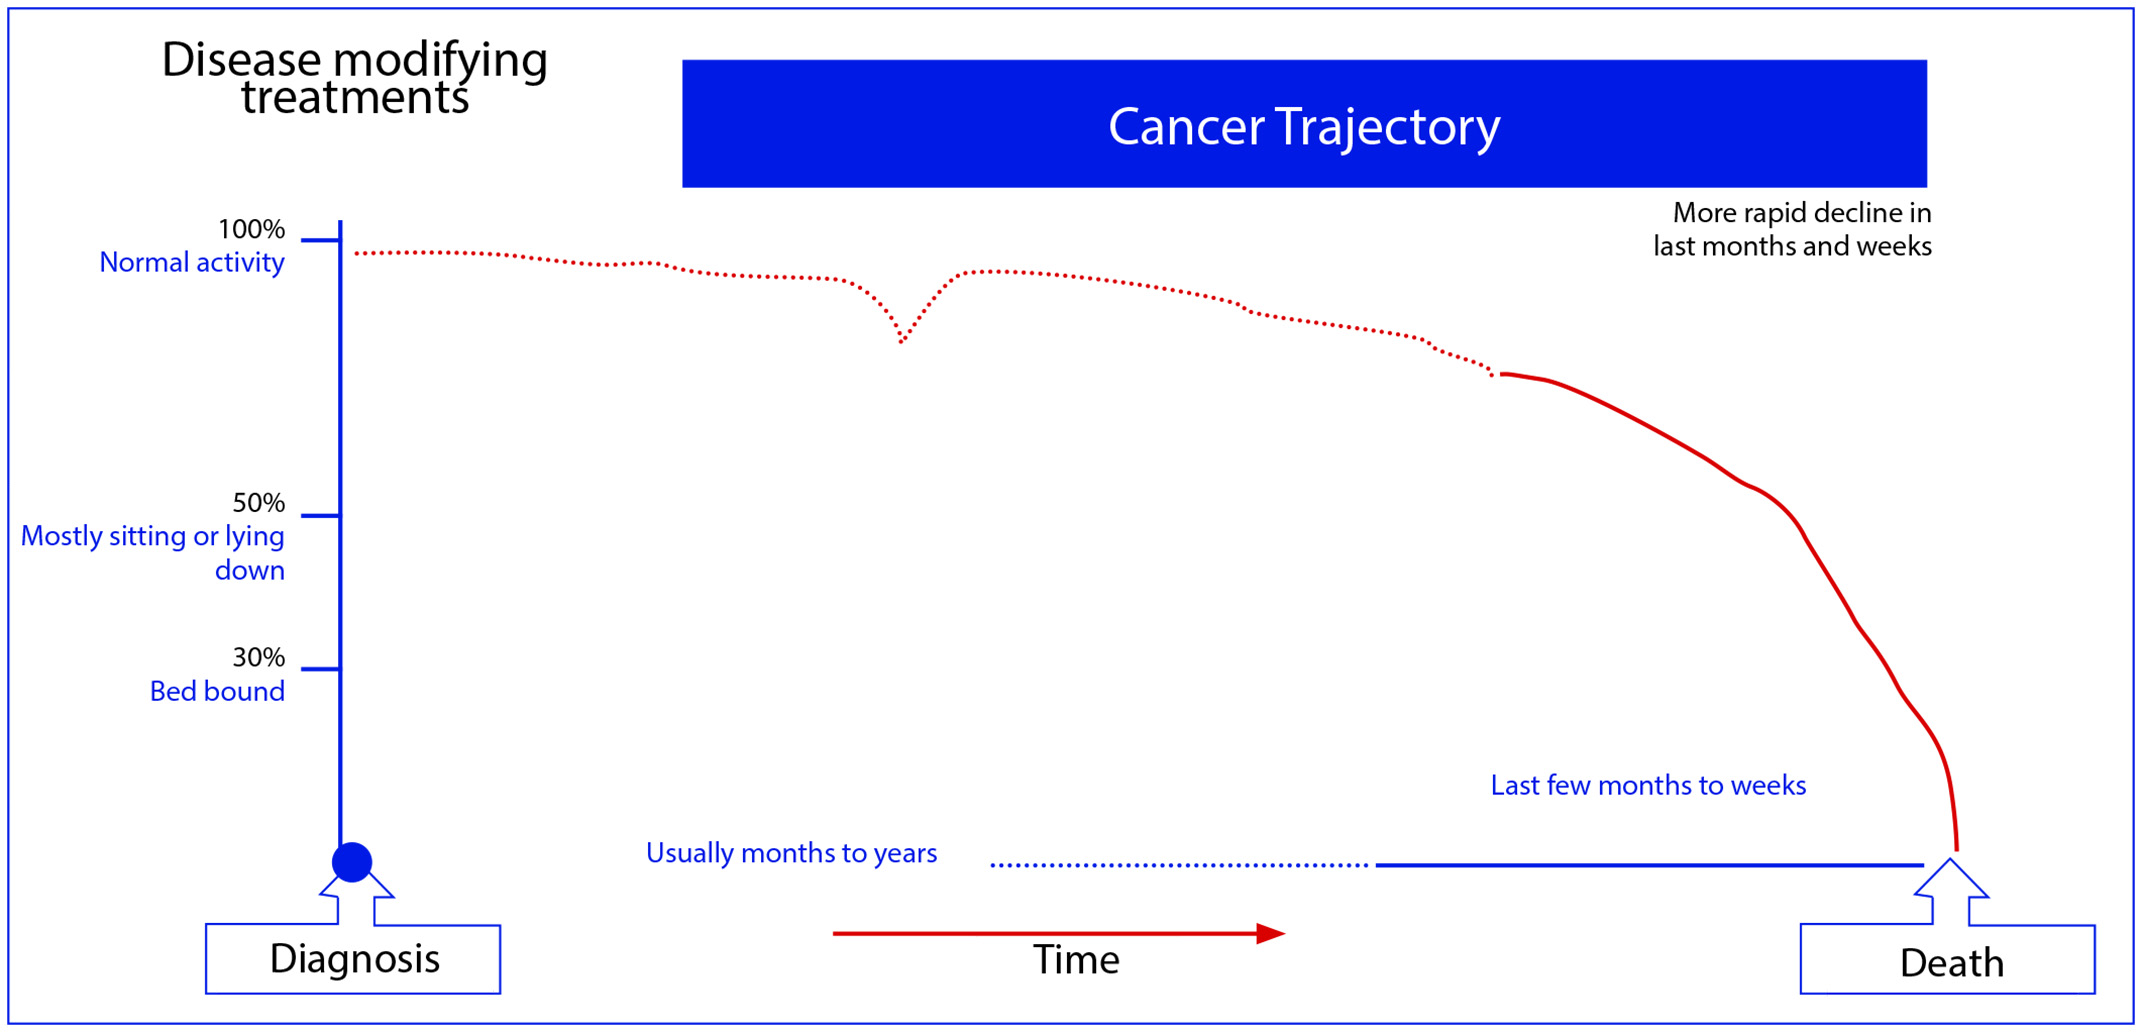 Cancer Trajectory